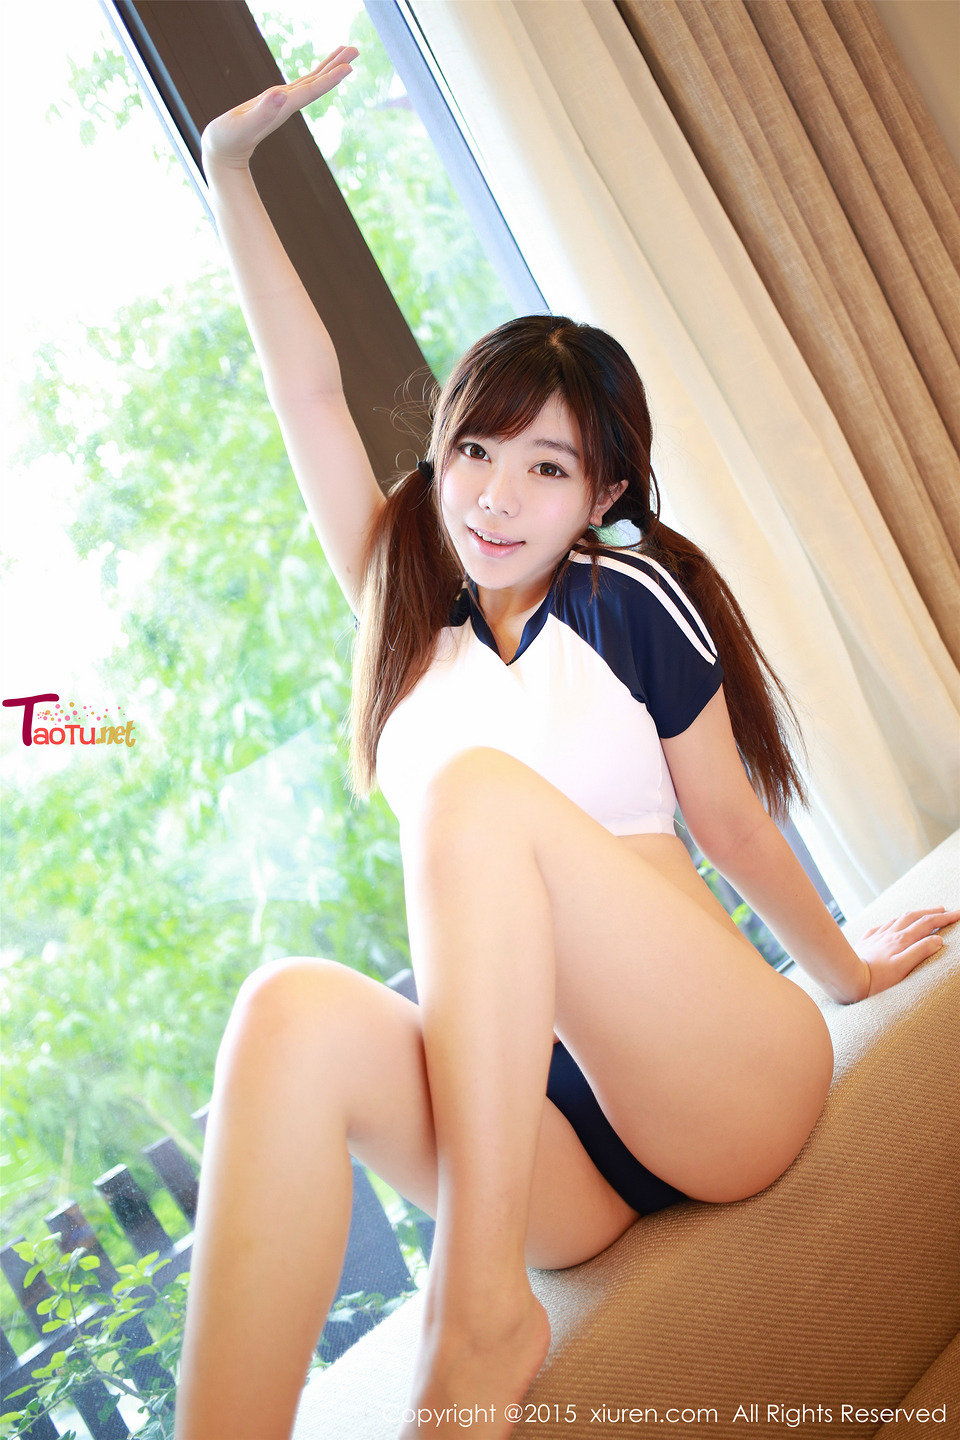 And Conservative Japanese Teen 15